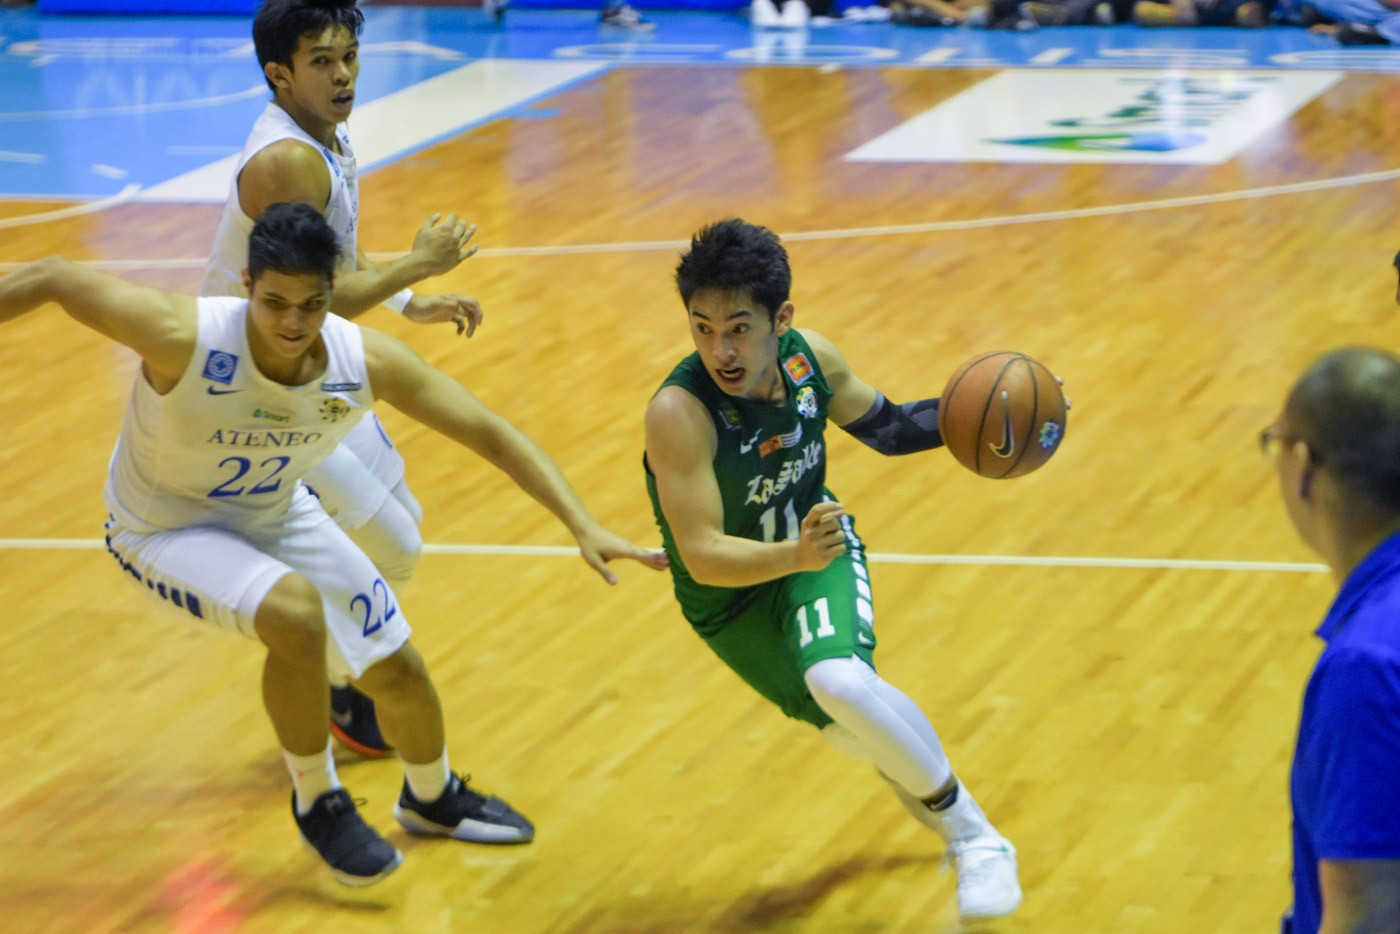 INTENSE. Aljun Melecio of De La Salle displayed the champion's heart, but his efforts fell short. Photo by Alecs Ongcal/ Rappler